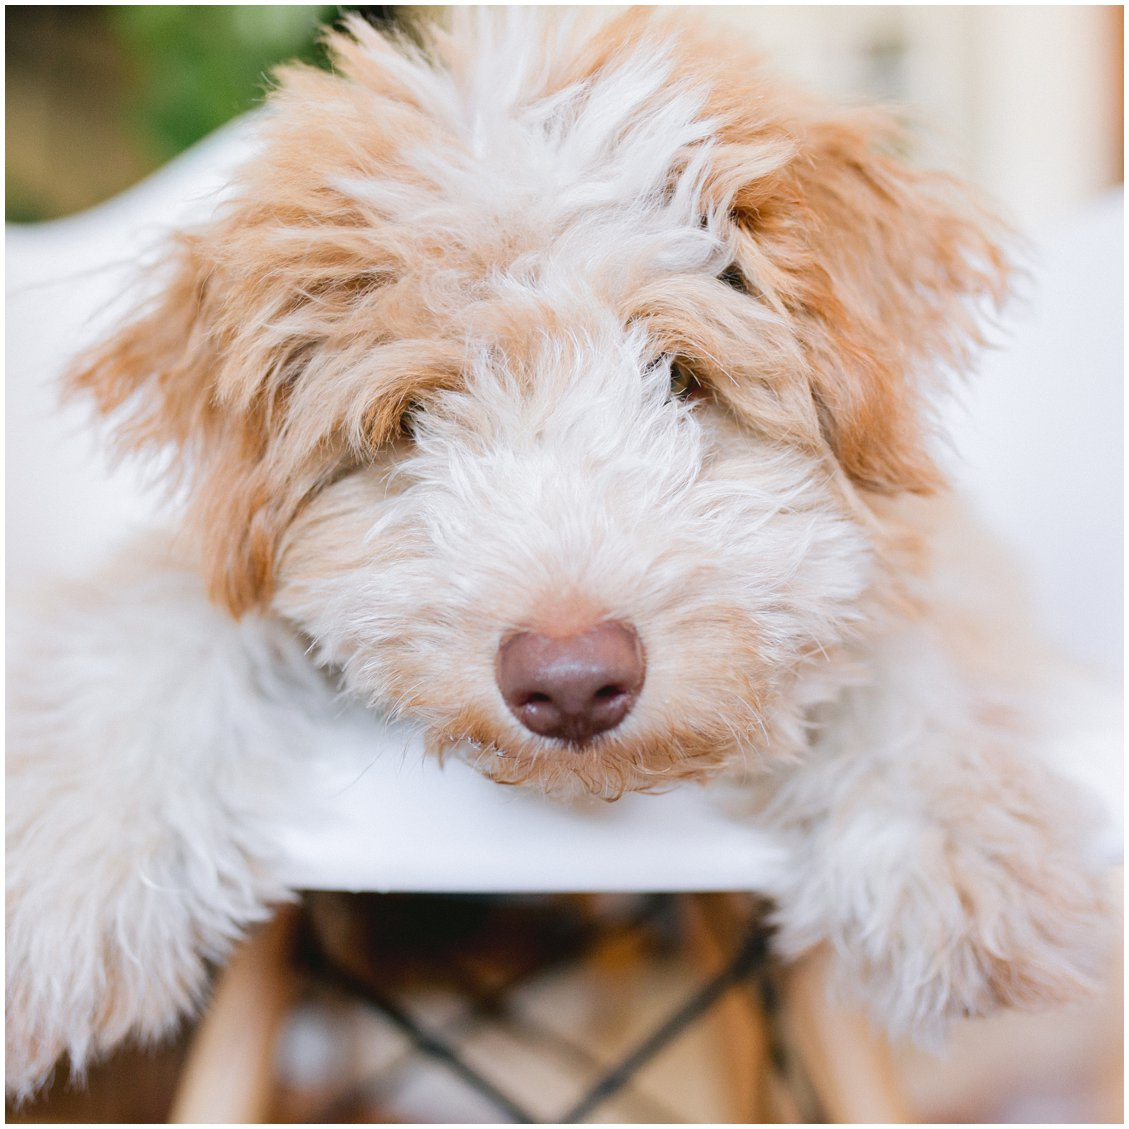 Mini Aussiedoodle puppy named Kodak in St Louis Missouri and part of Pattengale Photography wedding team